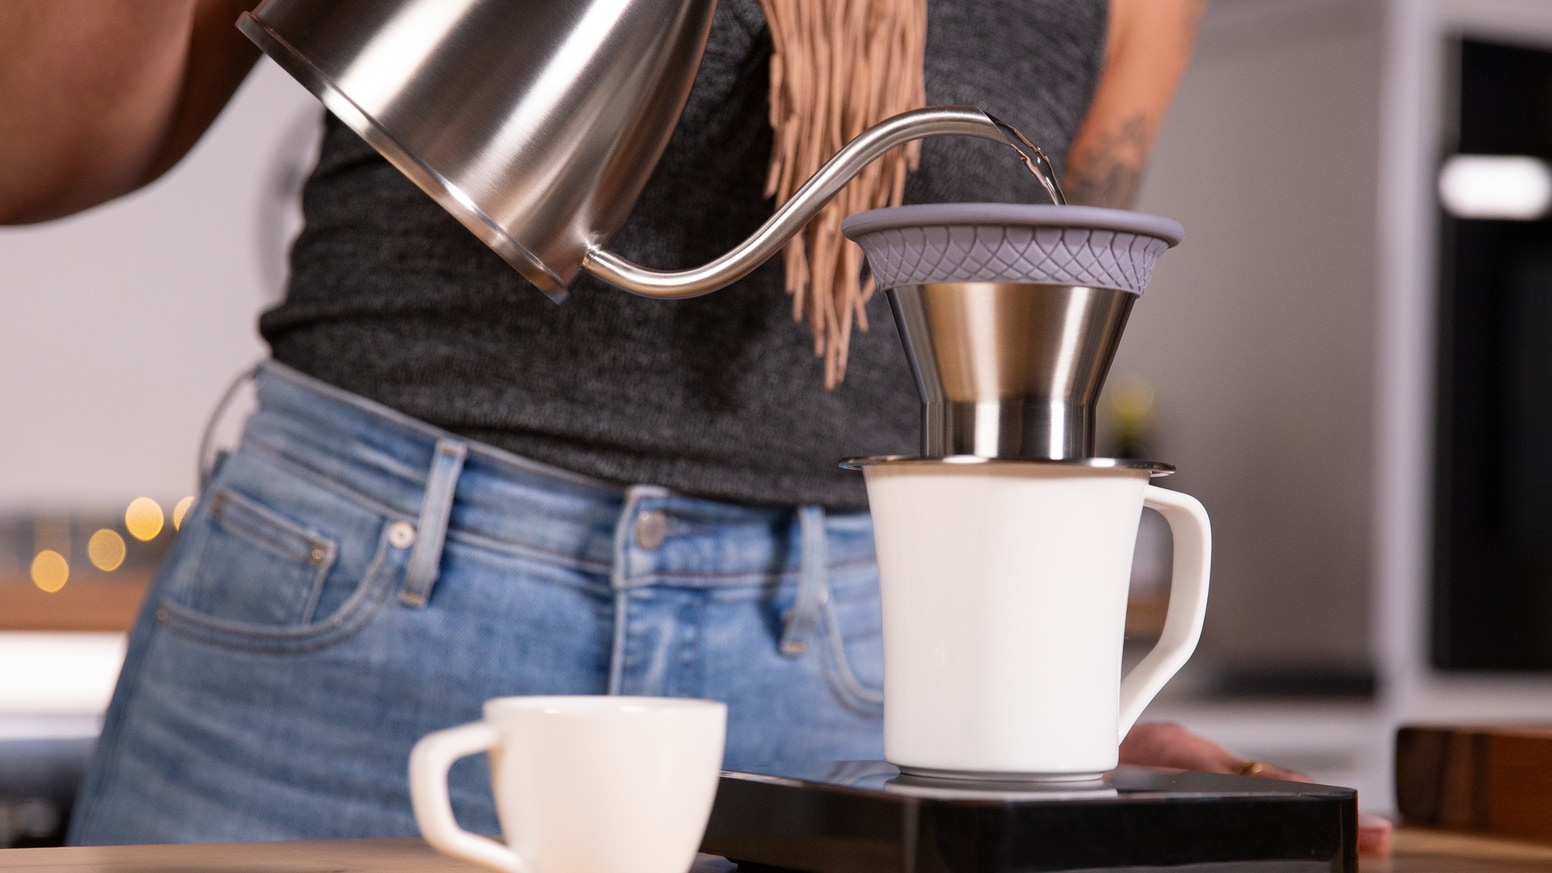 Release the full potential of your coffee in only 2 minutes!